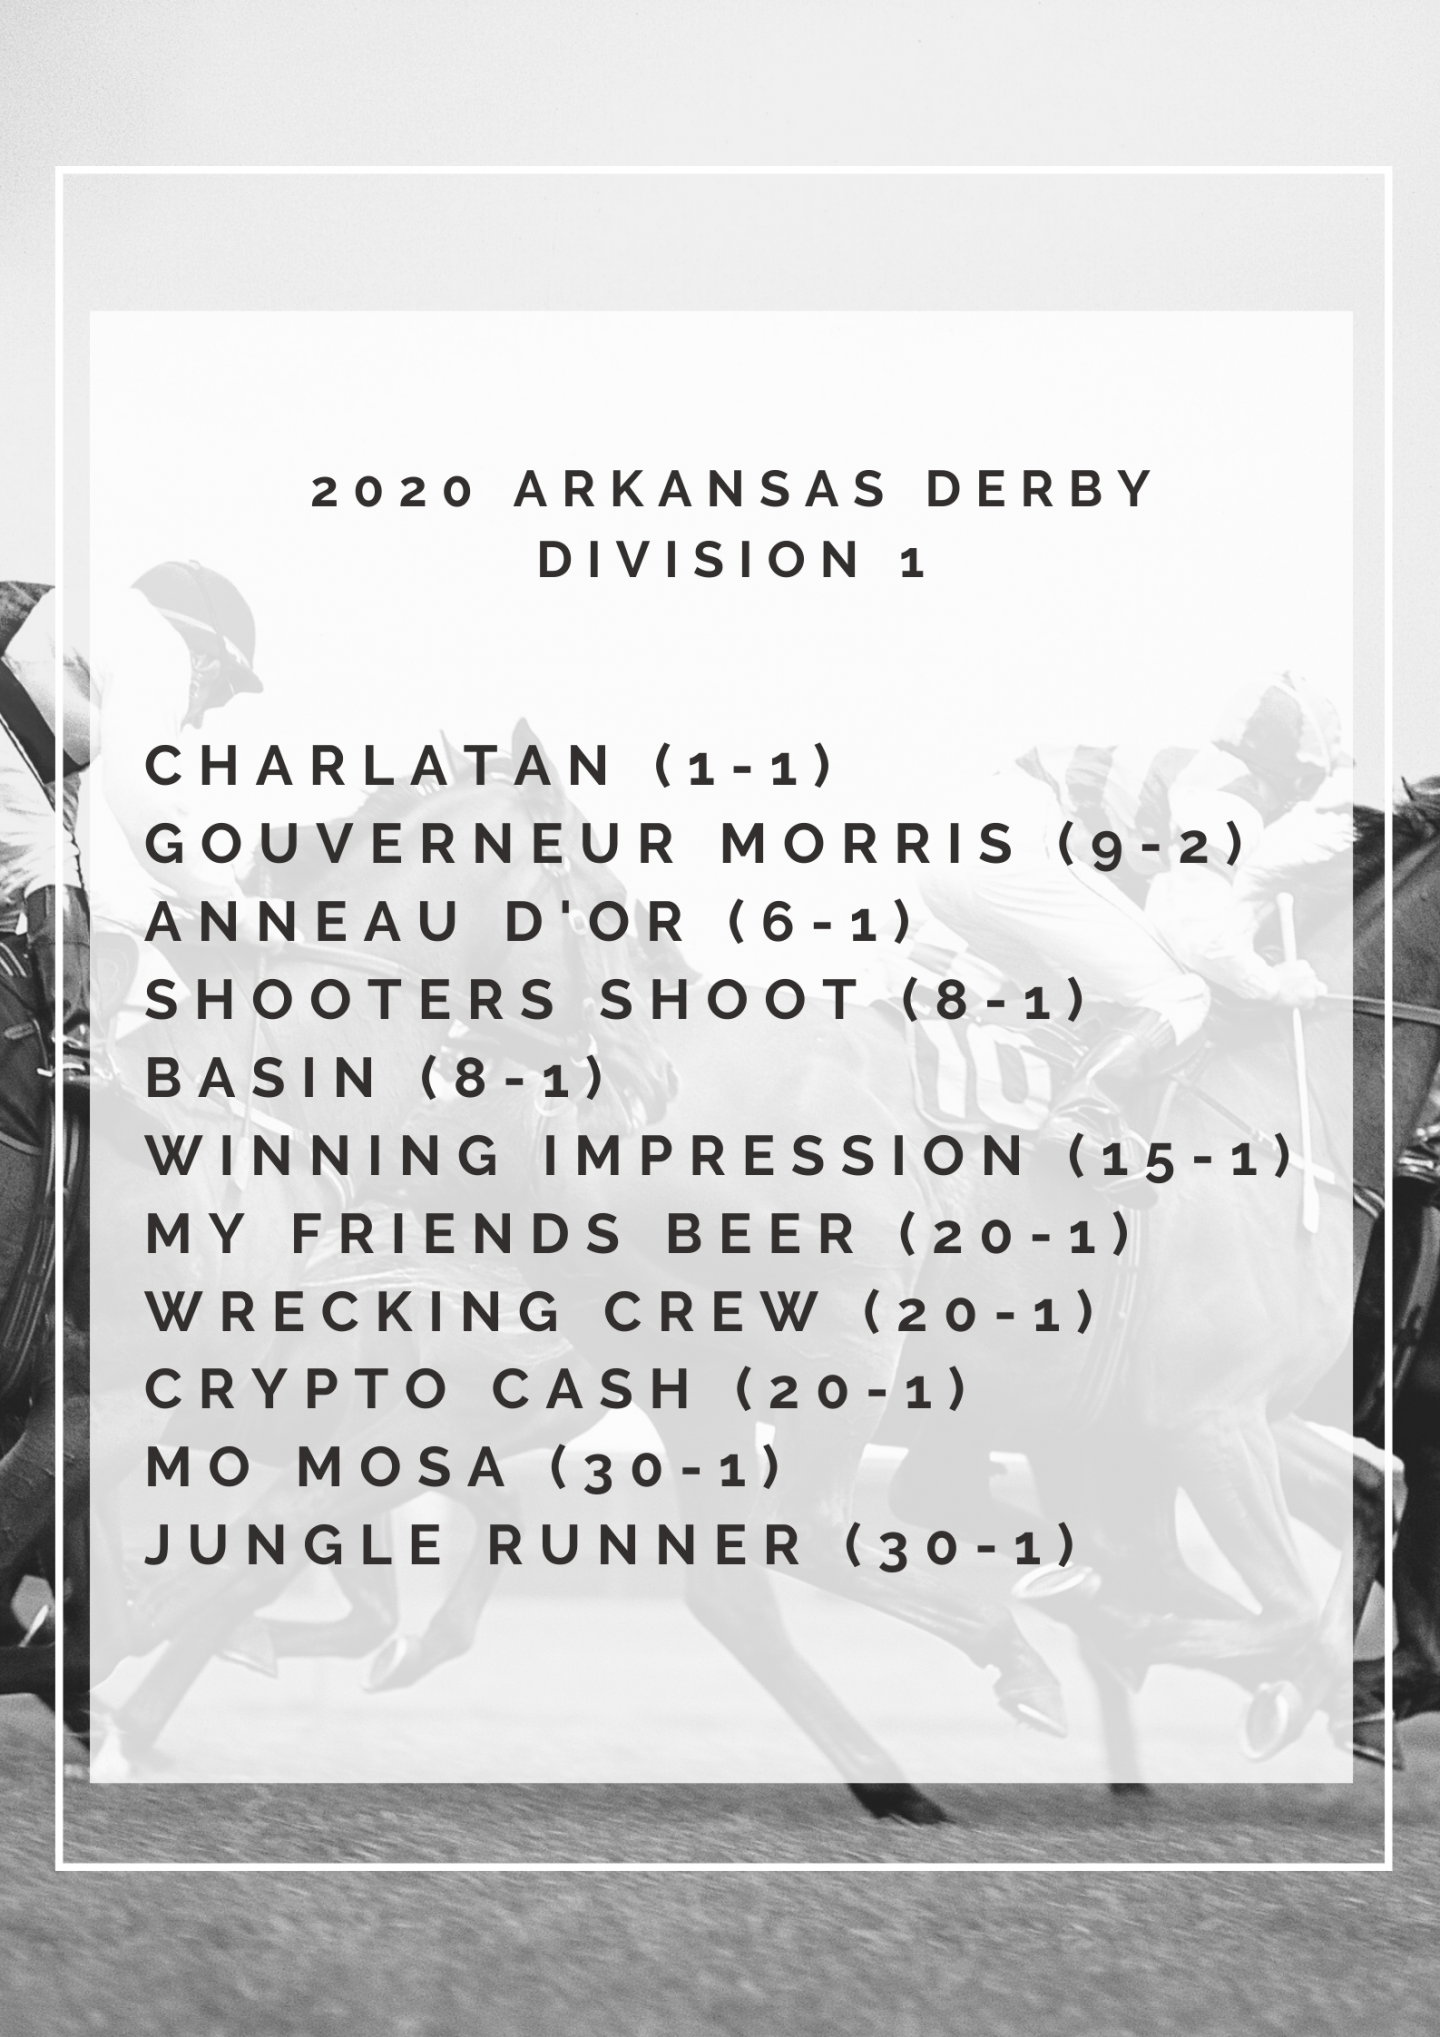 Arkansas Derby Division 1